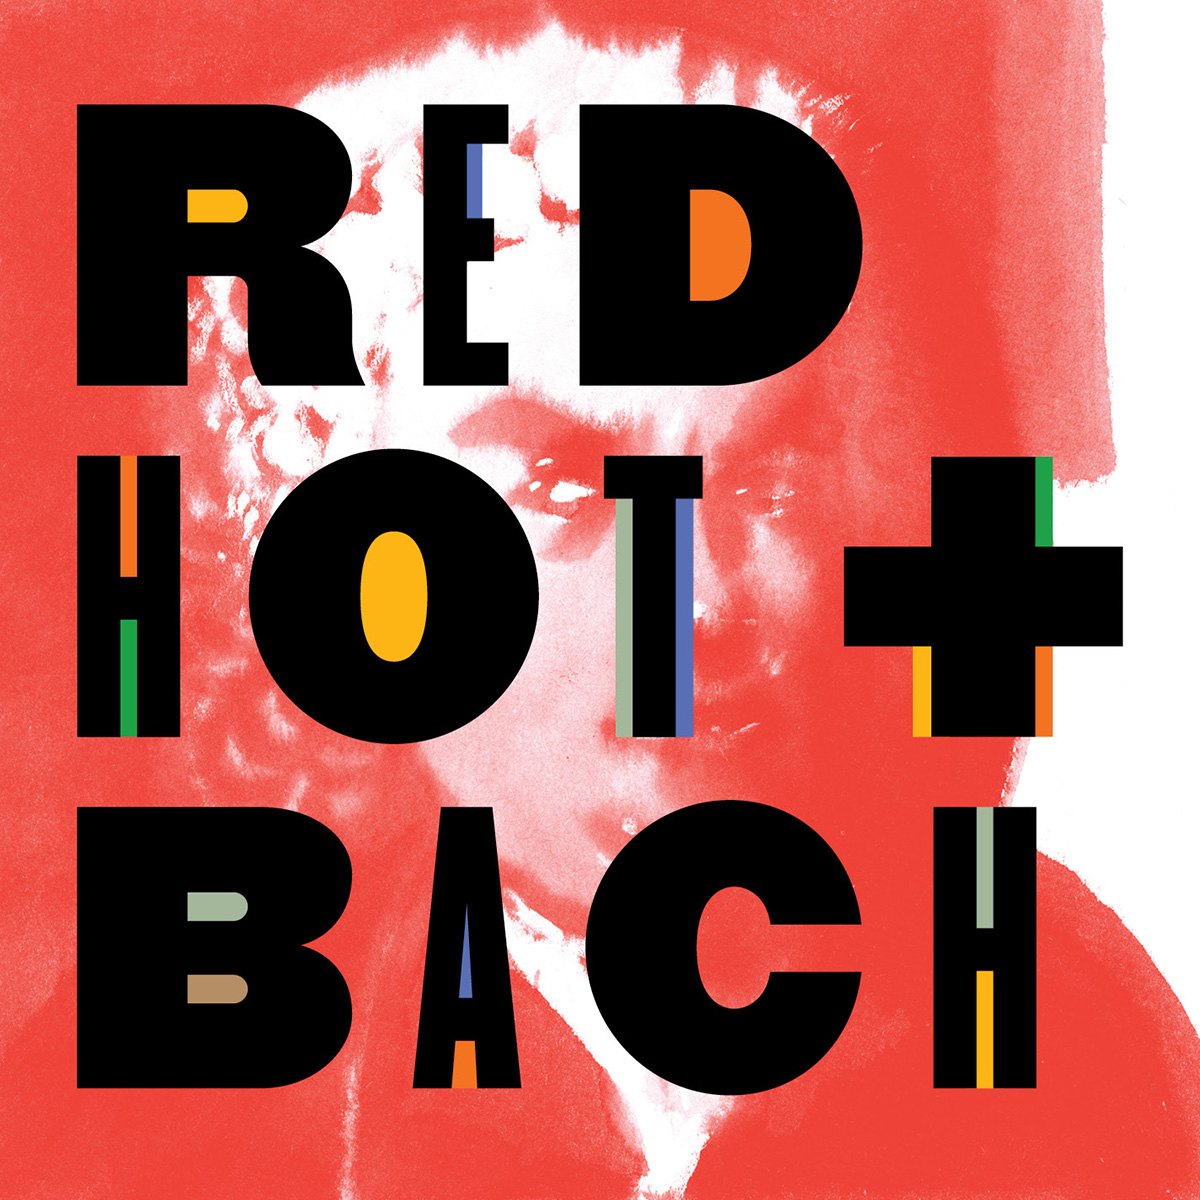 07-Red-Hot-+-Bach